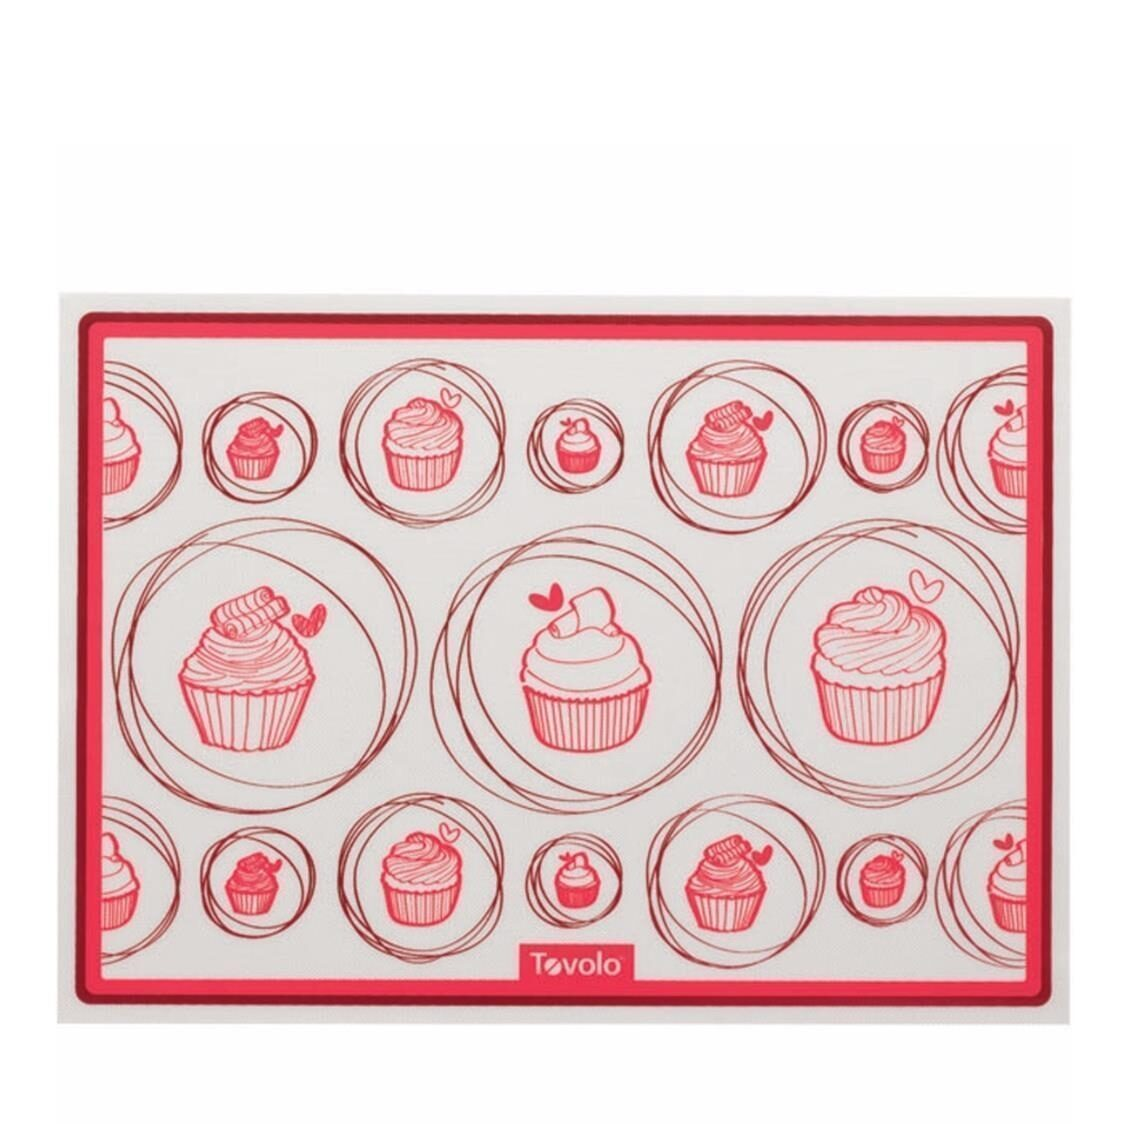 Silicone Baking Mat Toaster Oven